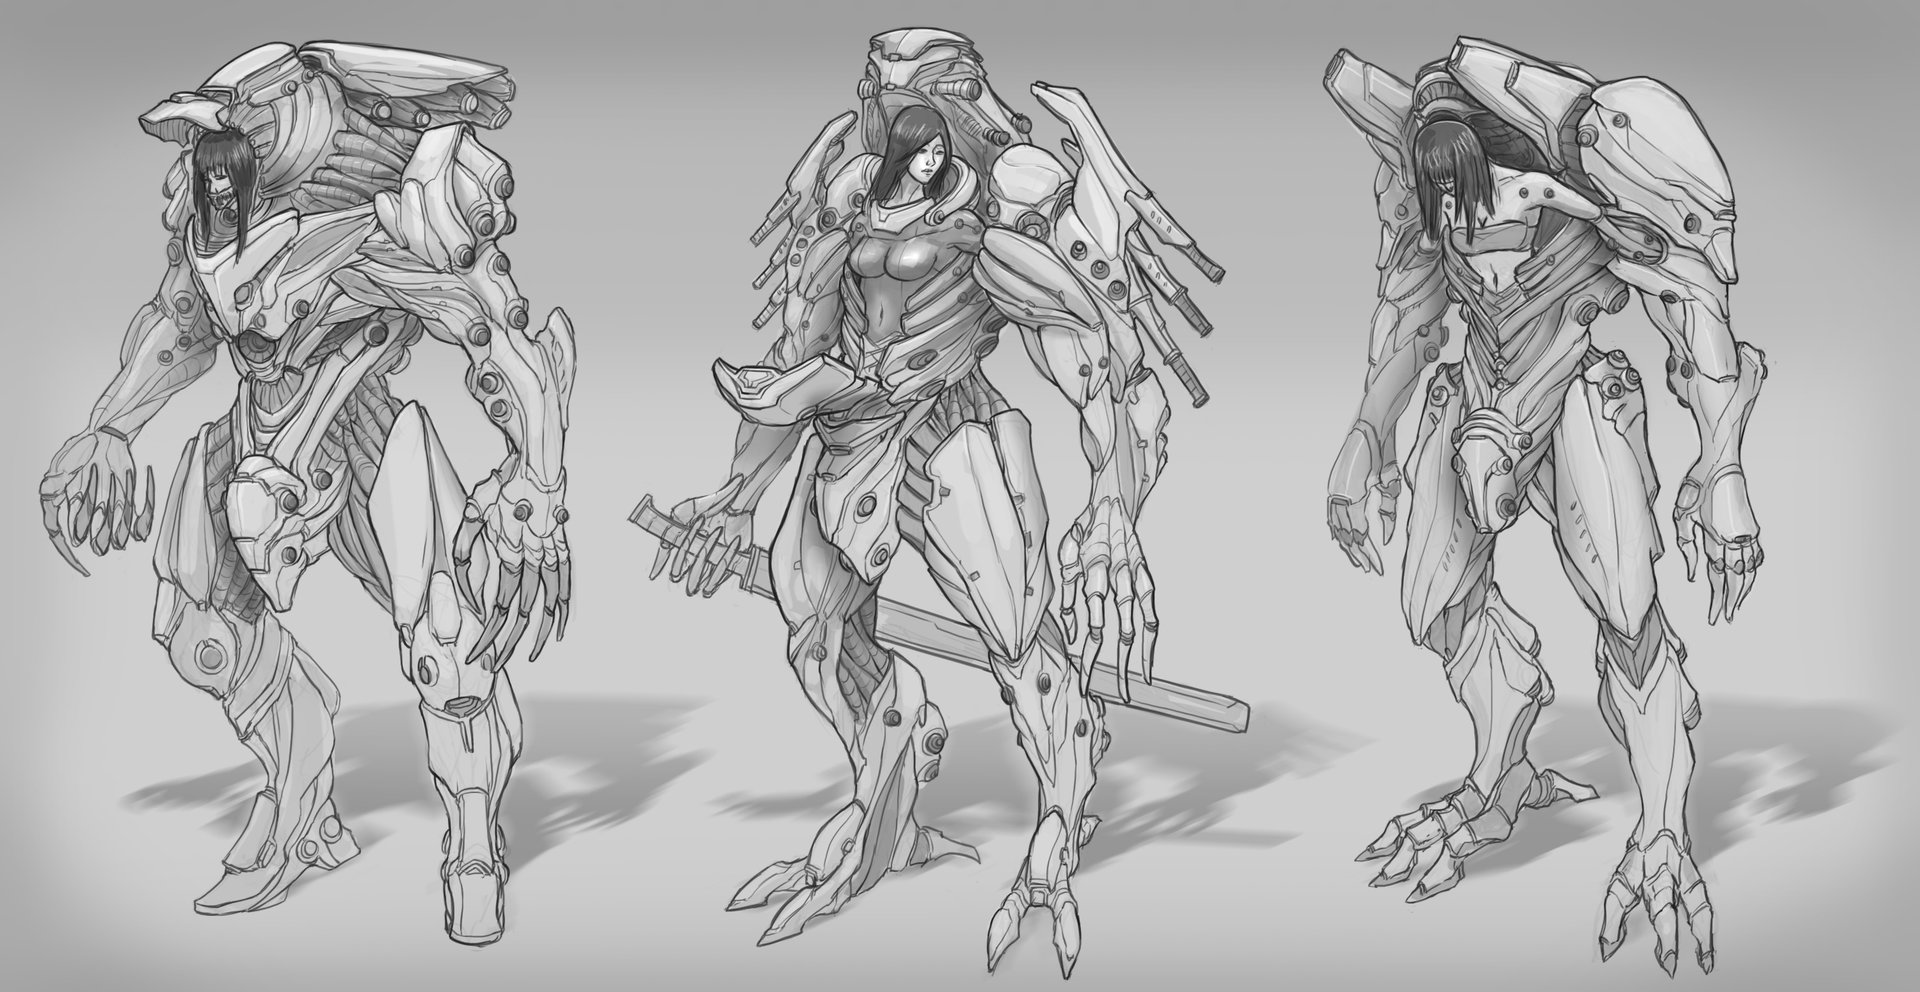 Edwin-Ho-Mech-Suit-Line-Drawing